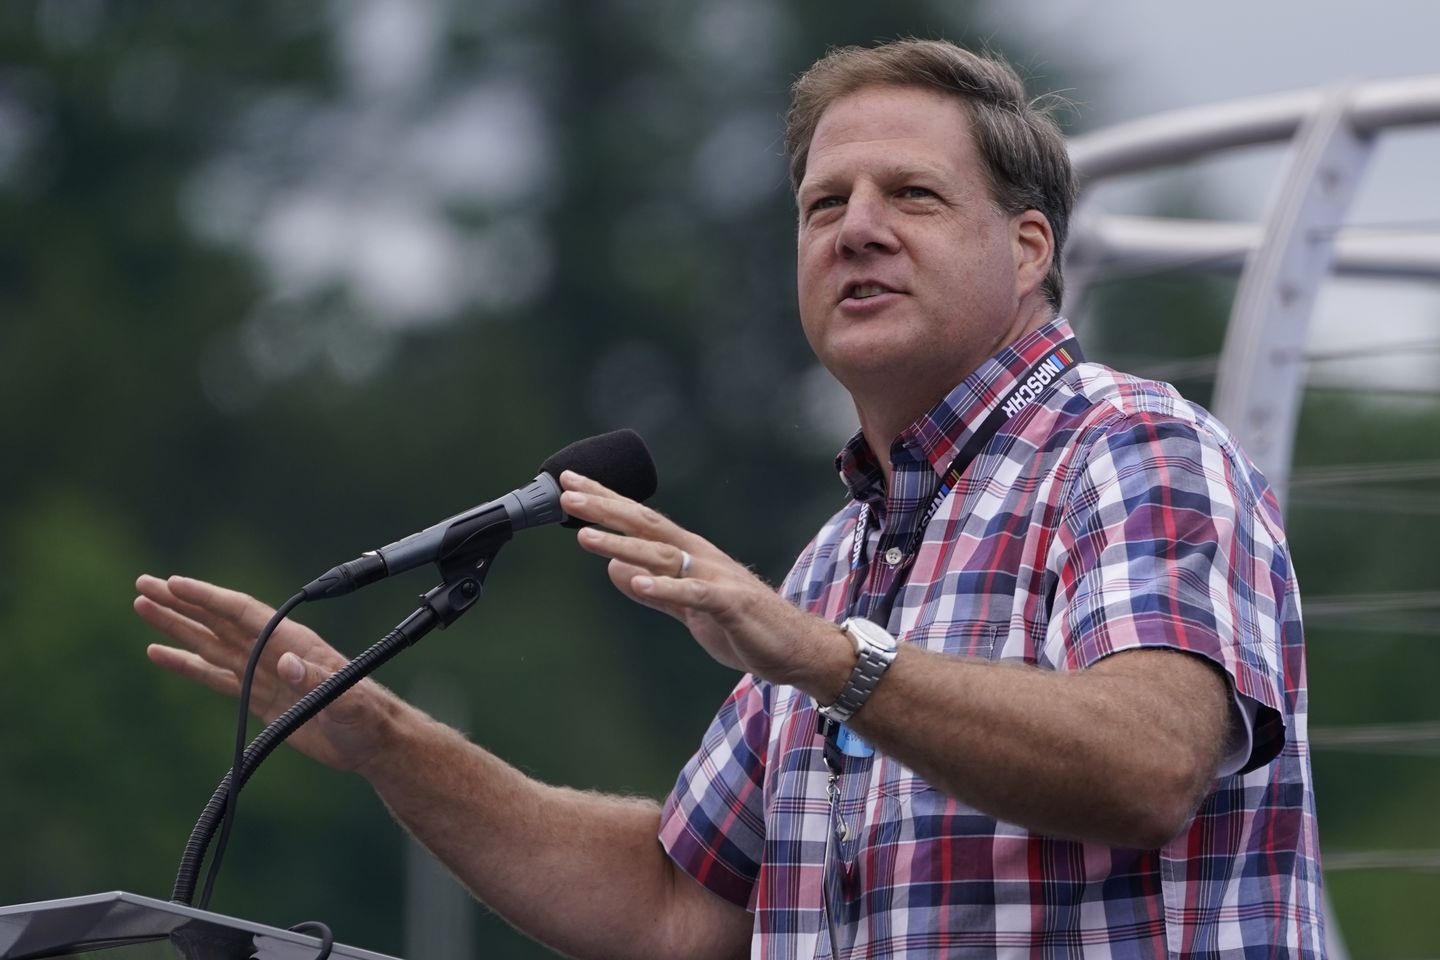 Chris Sununu, New Hampshire governor, signs 'medical freedom' law against COVID-19 vaccines